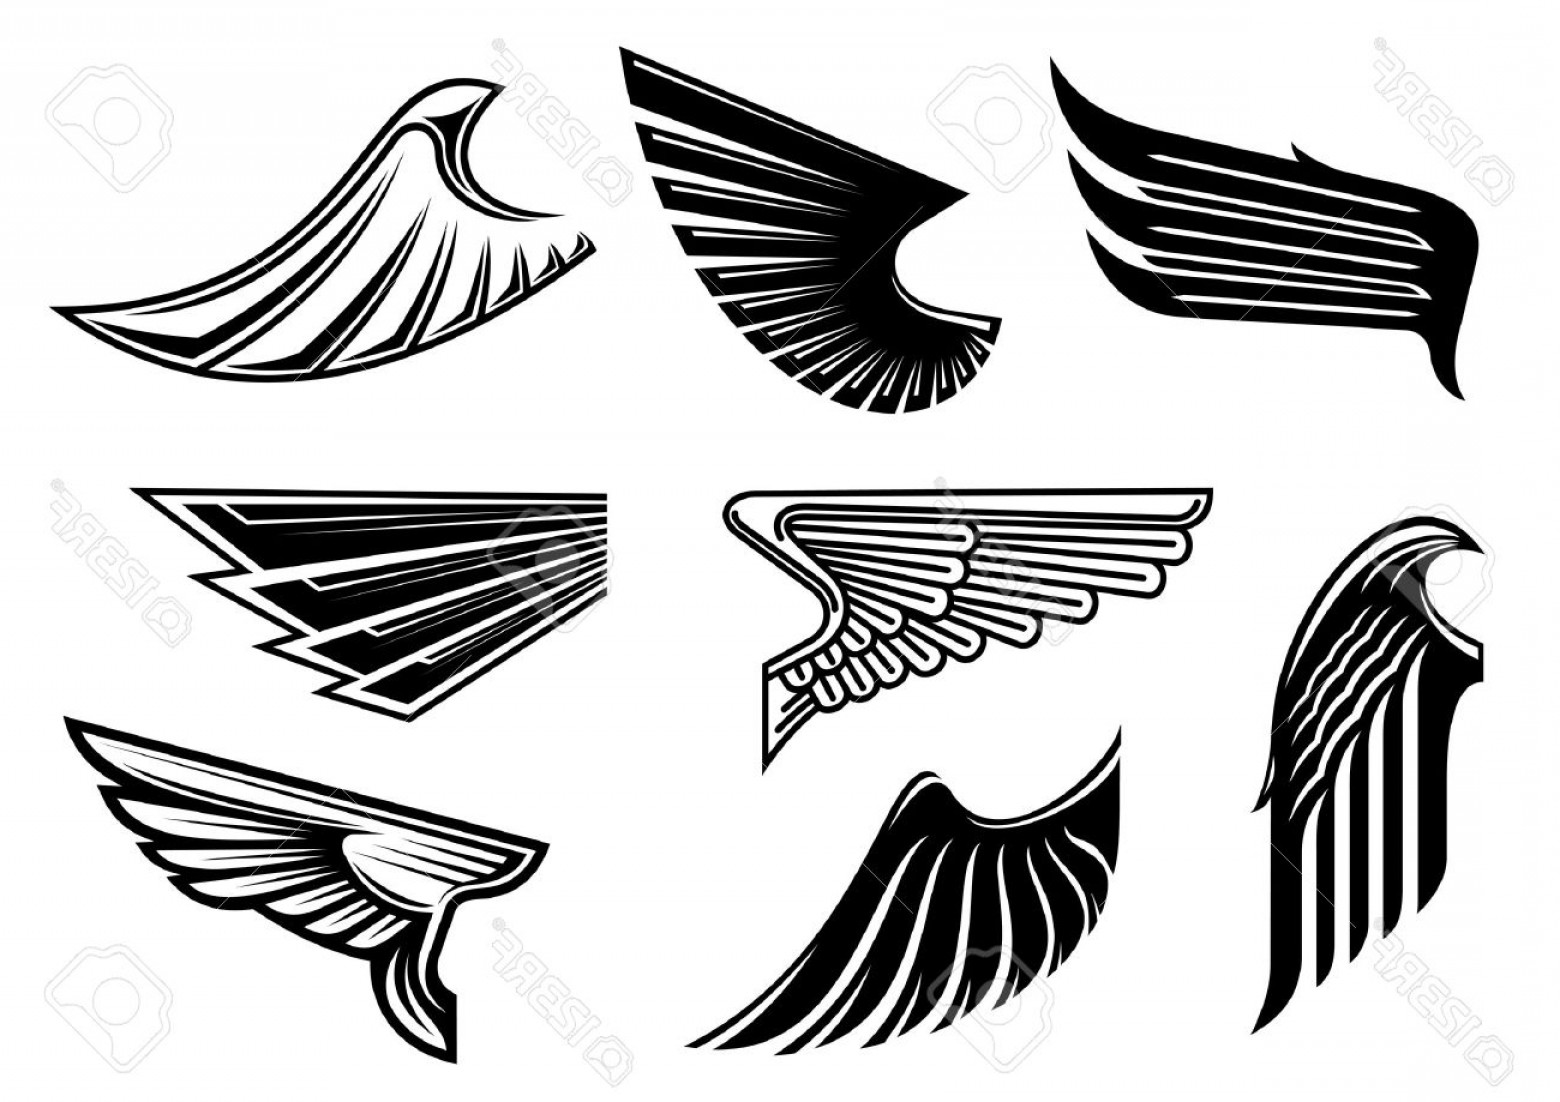 Vector Black Tribal: Photostock Vector Black Tribal Wings With Pointed Feathering Isolated On White For Tattoo Religious Or Heraldic Design